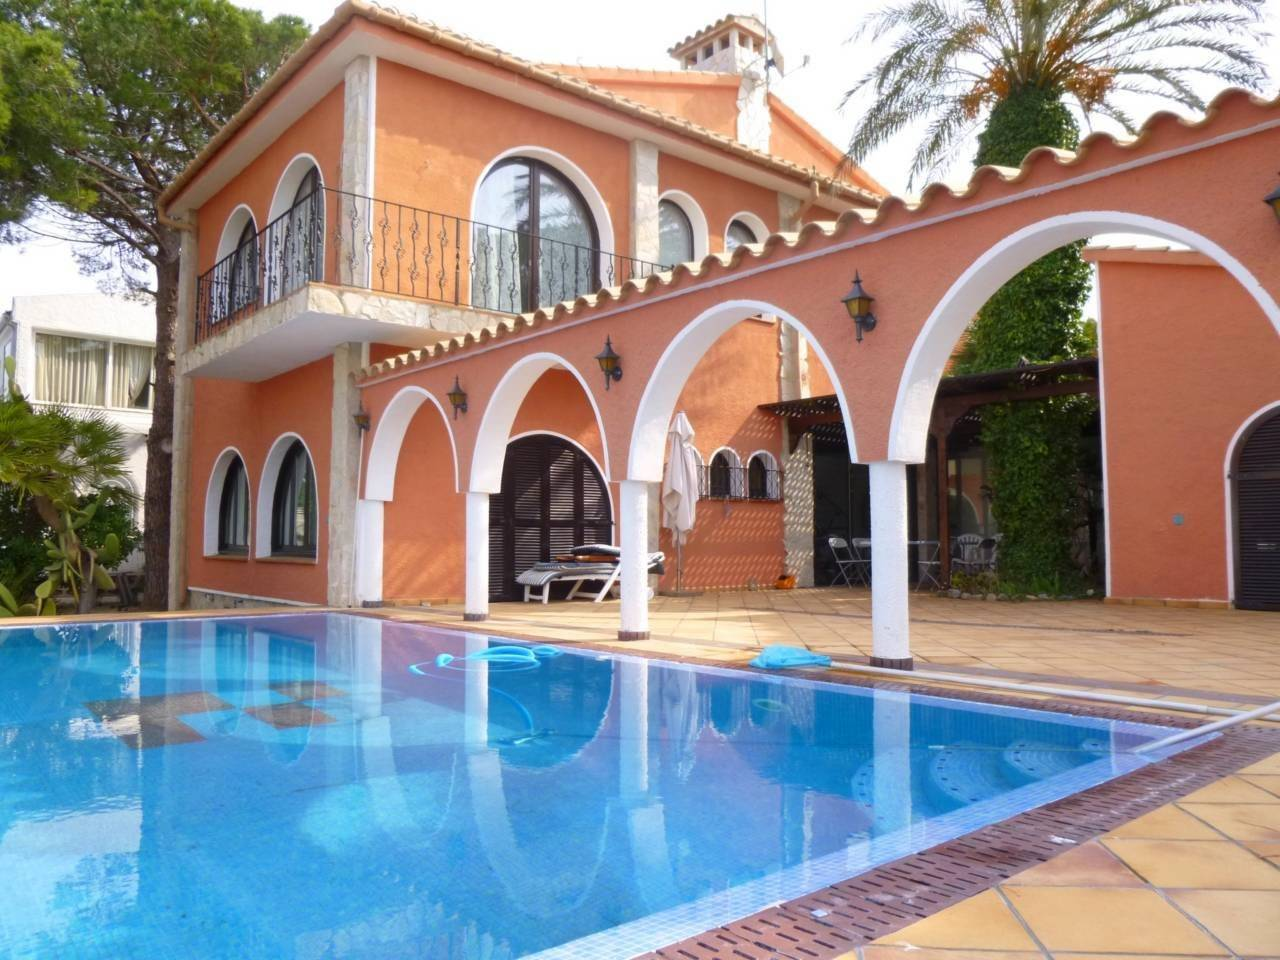 000003 - REQUESENS House at the canal with pool and mooring